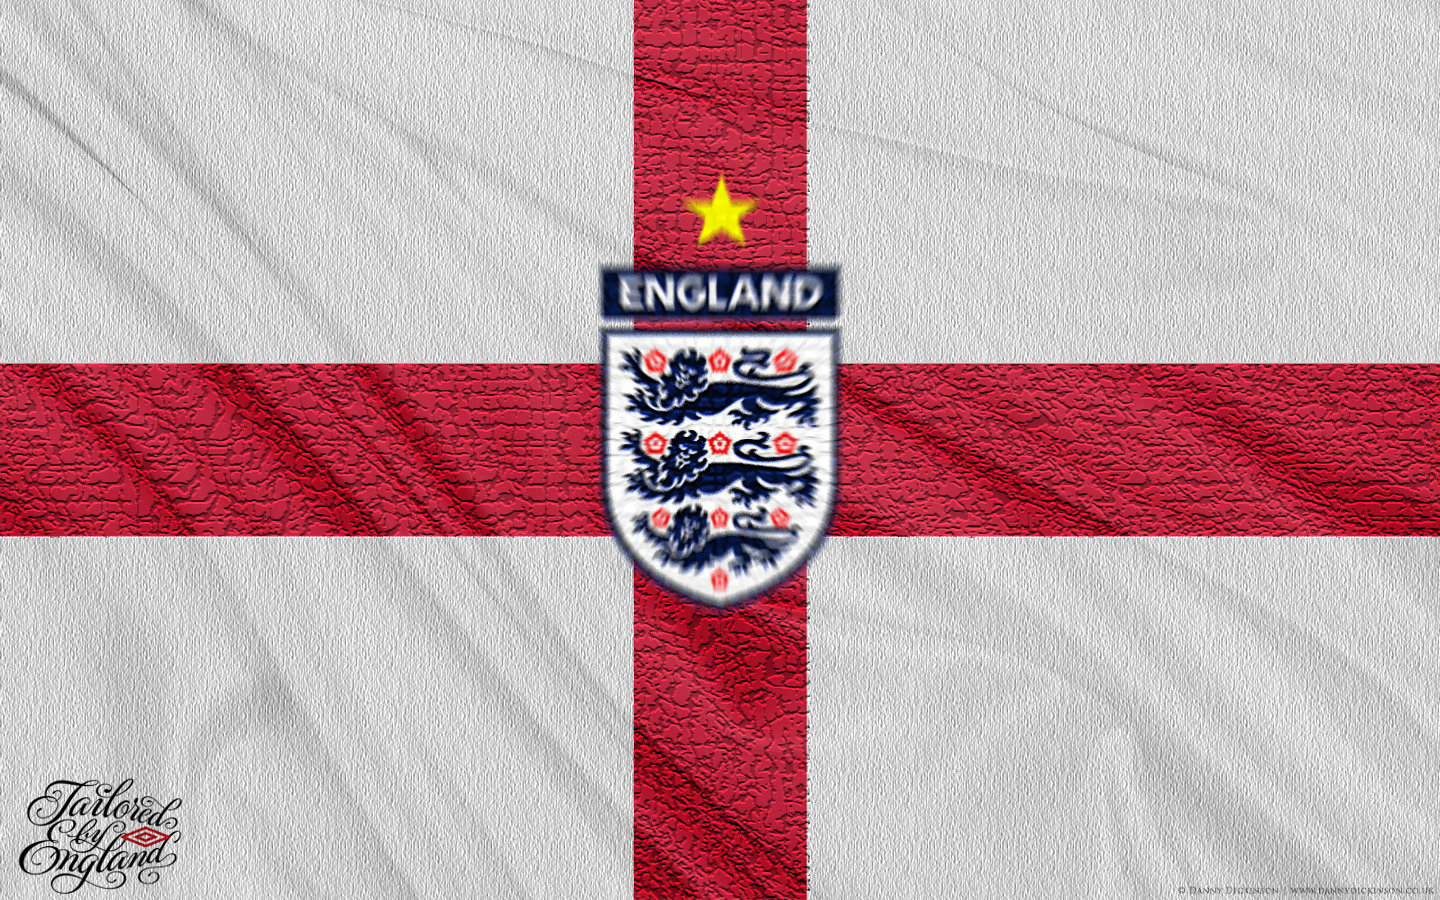 HDQ Cover England Wallpapers, High Quality, B.SCB